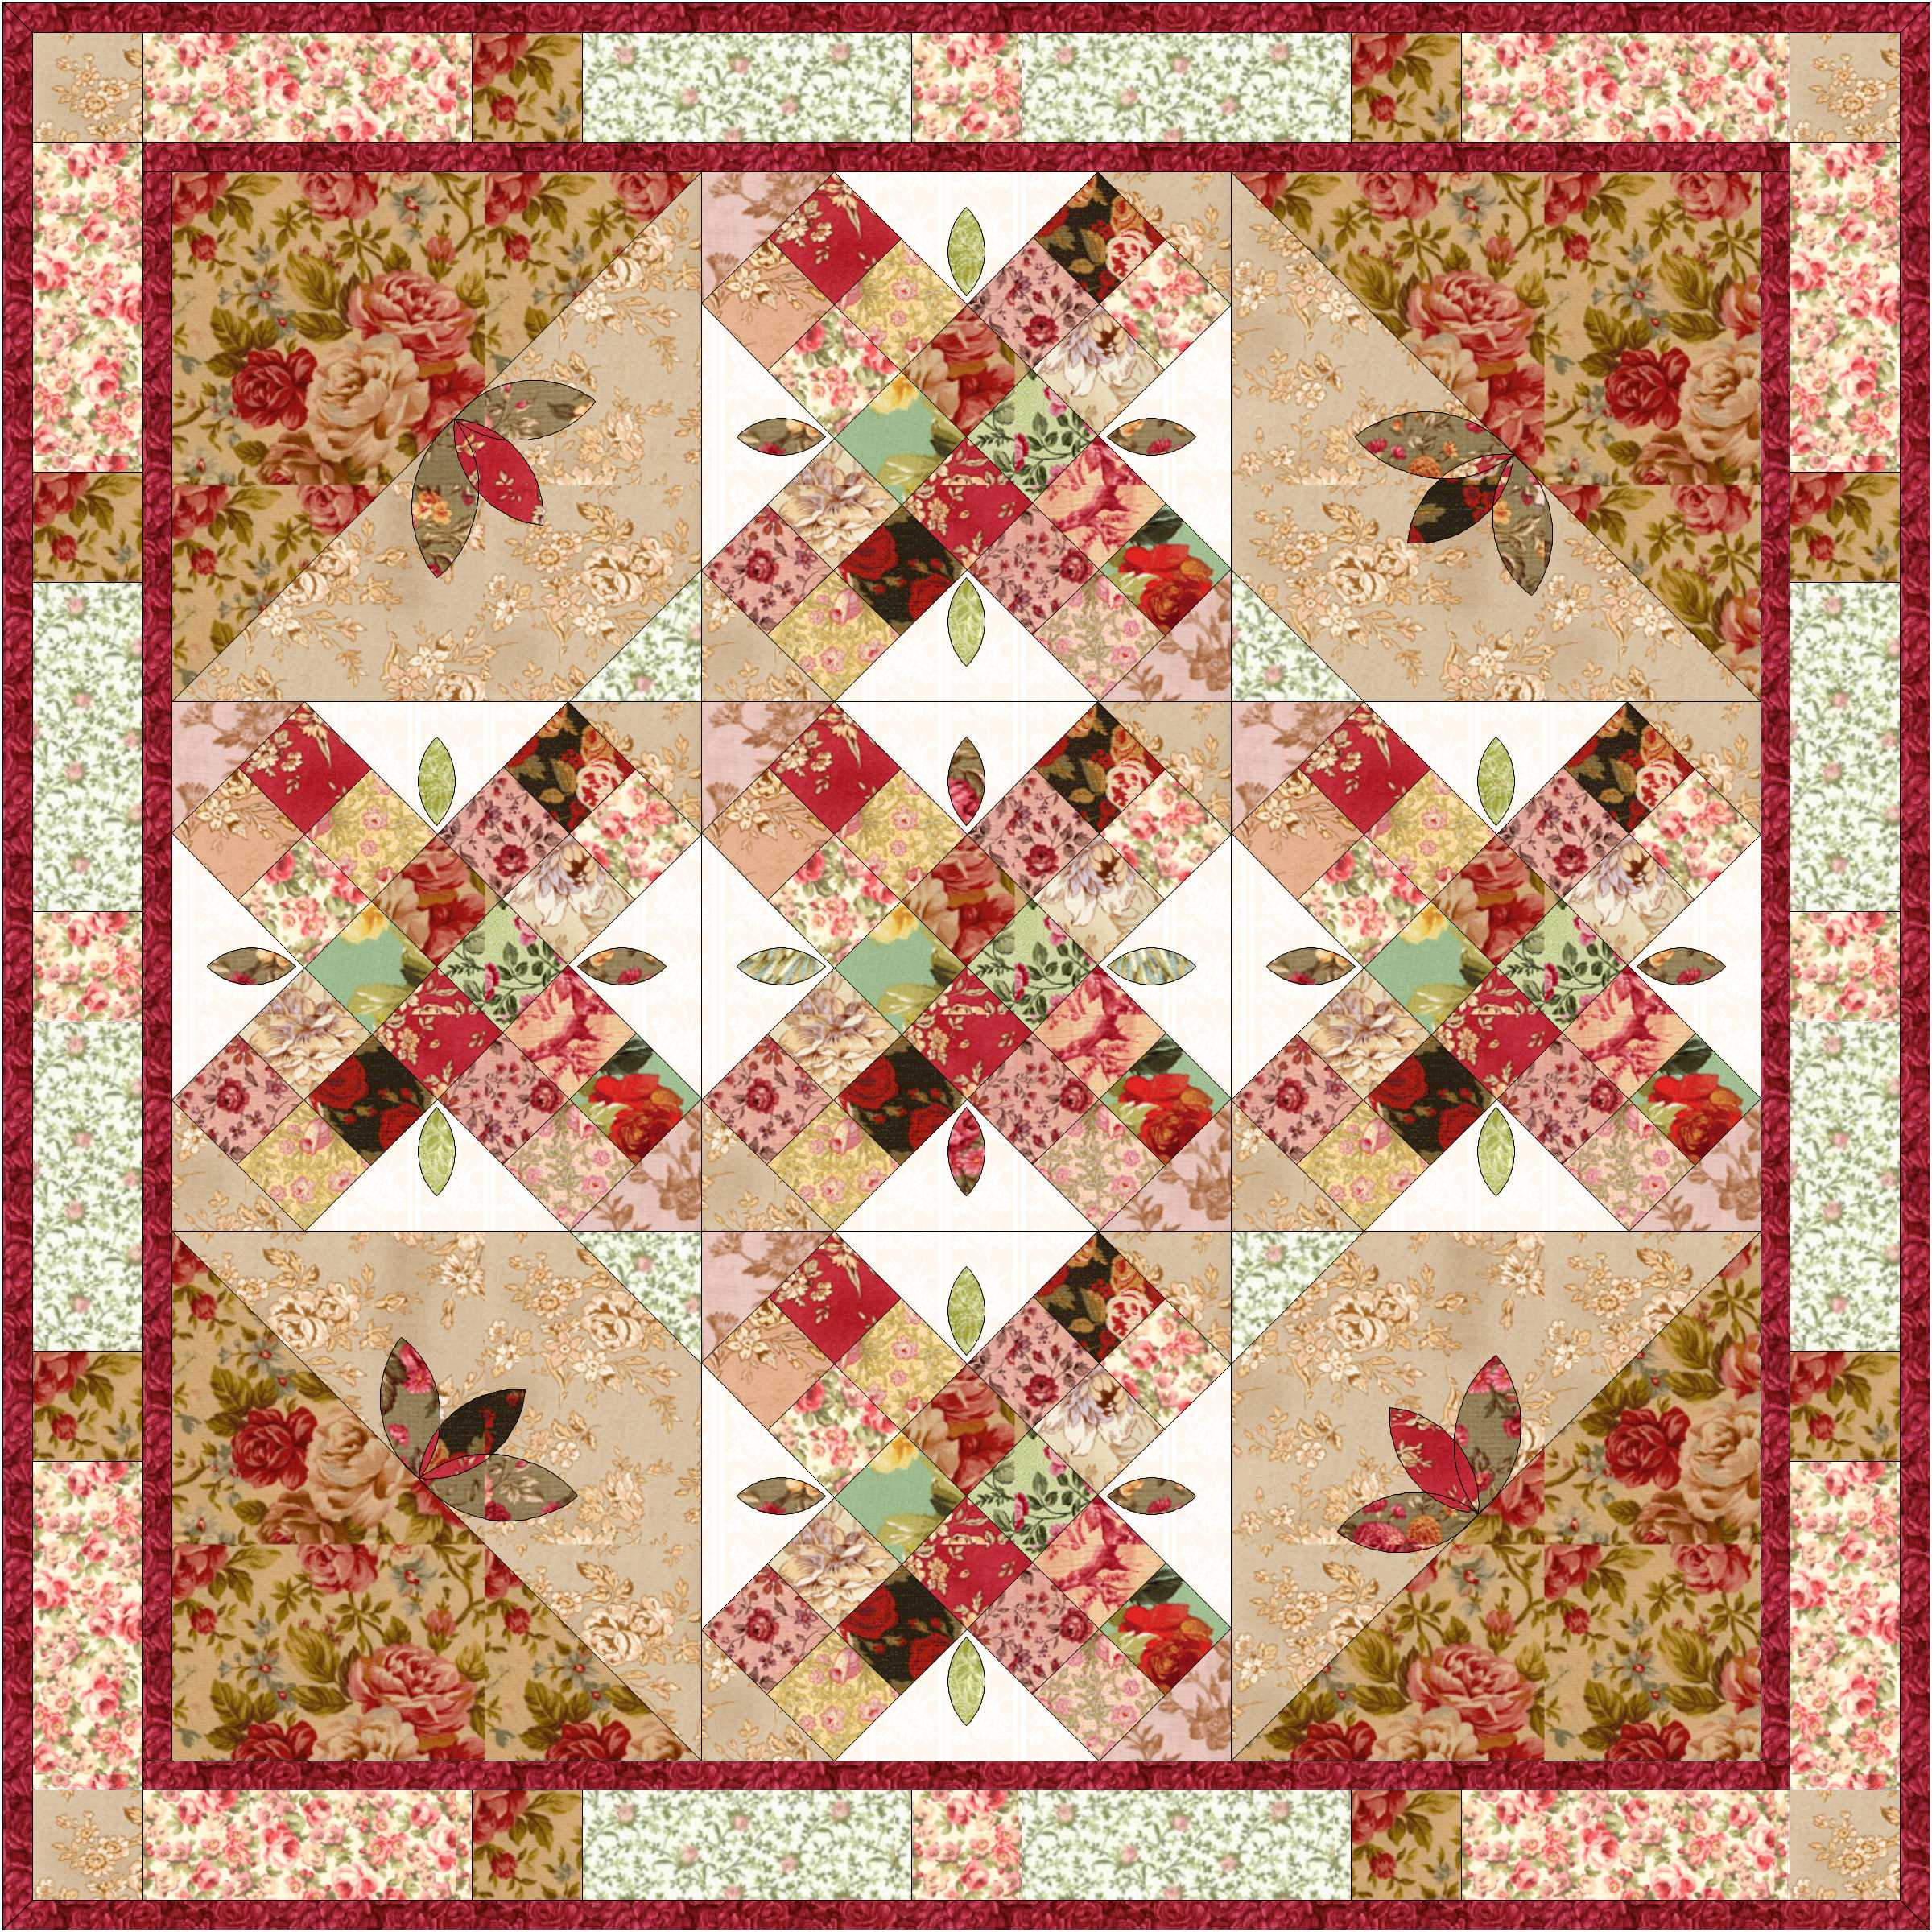 Quilting Patterns Xmas Free : Quilting Patterns Free Christmas images